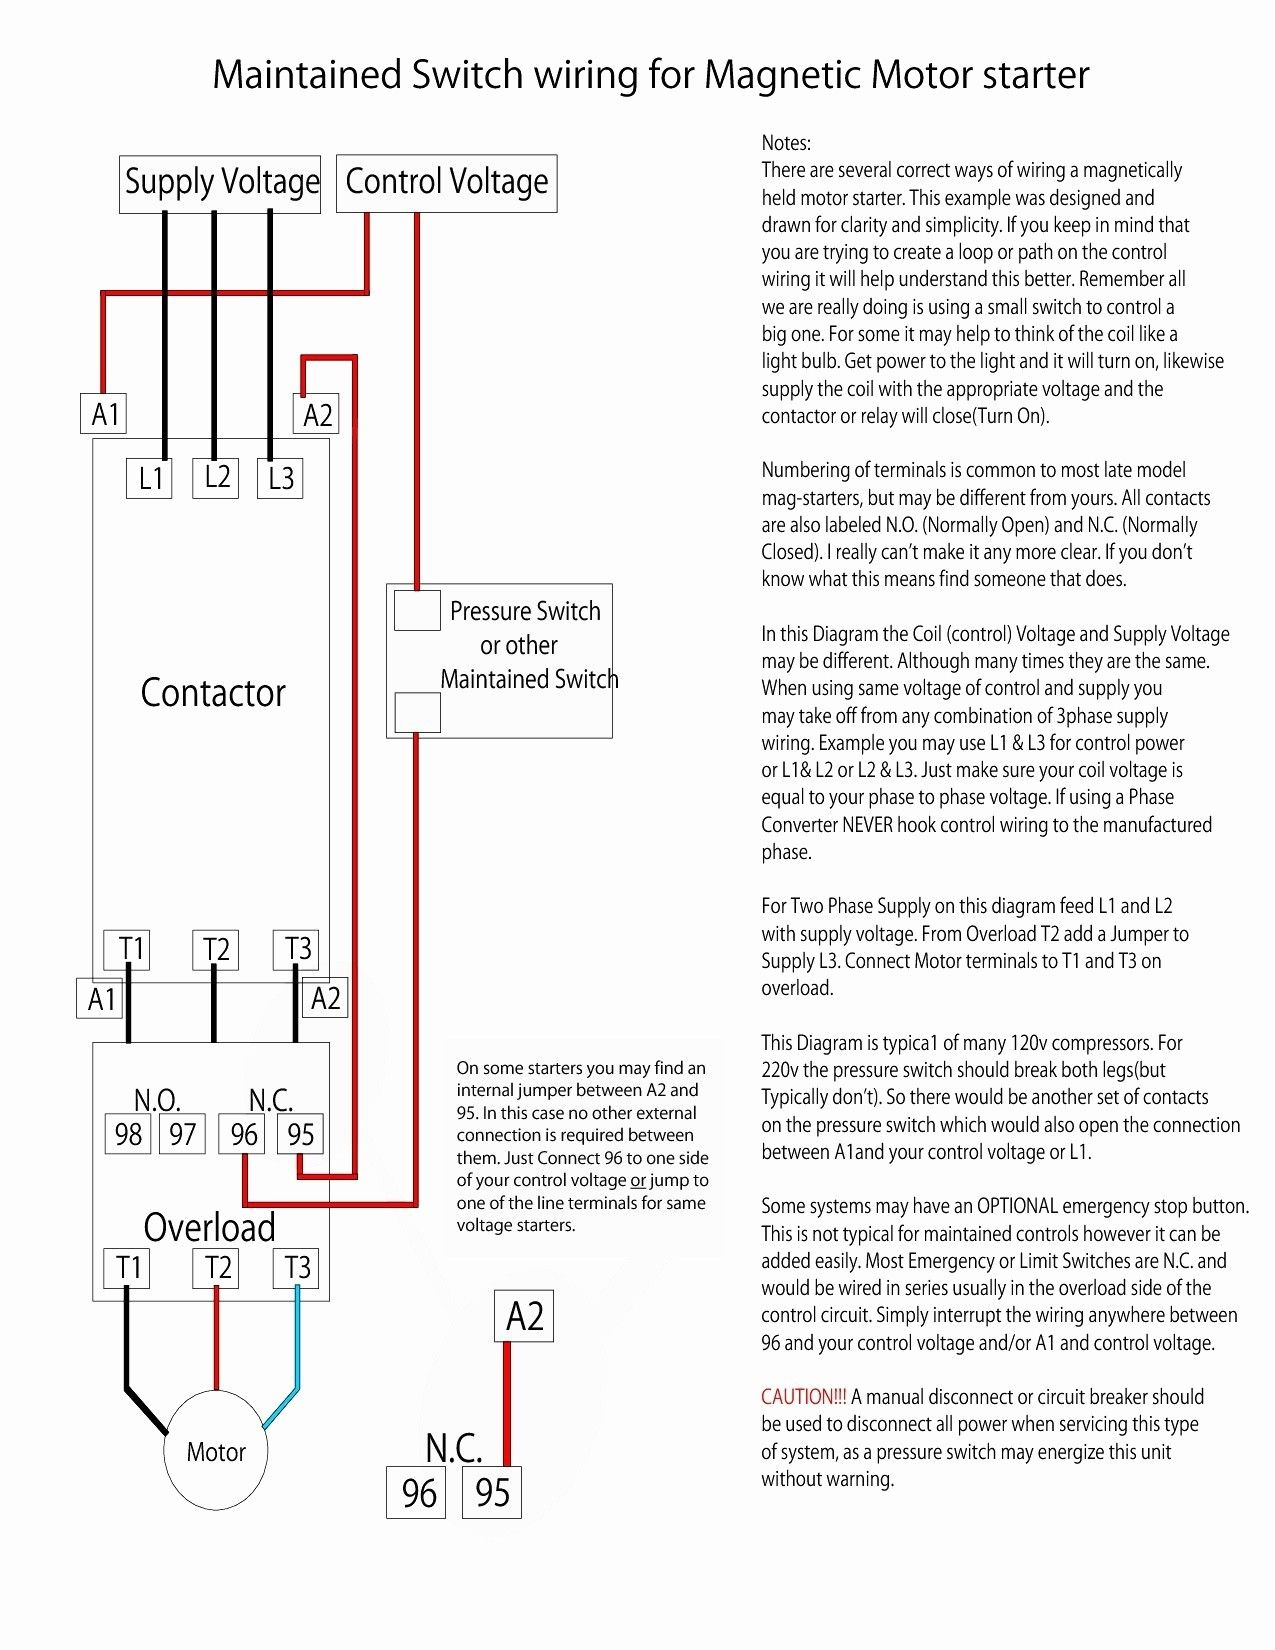 New Electrical Wiring Diagram toyota Avanza #diagram #diagramtemplate  #diagramsample | Electrical wiring diagram, Diagram, Dry type transformerPinterest